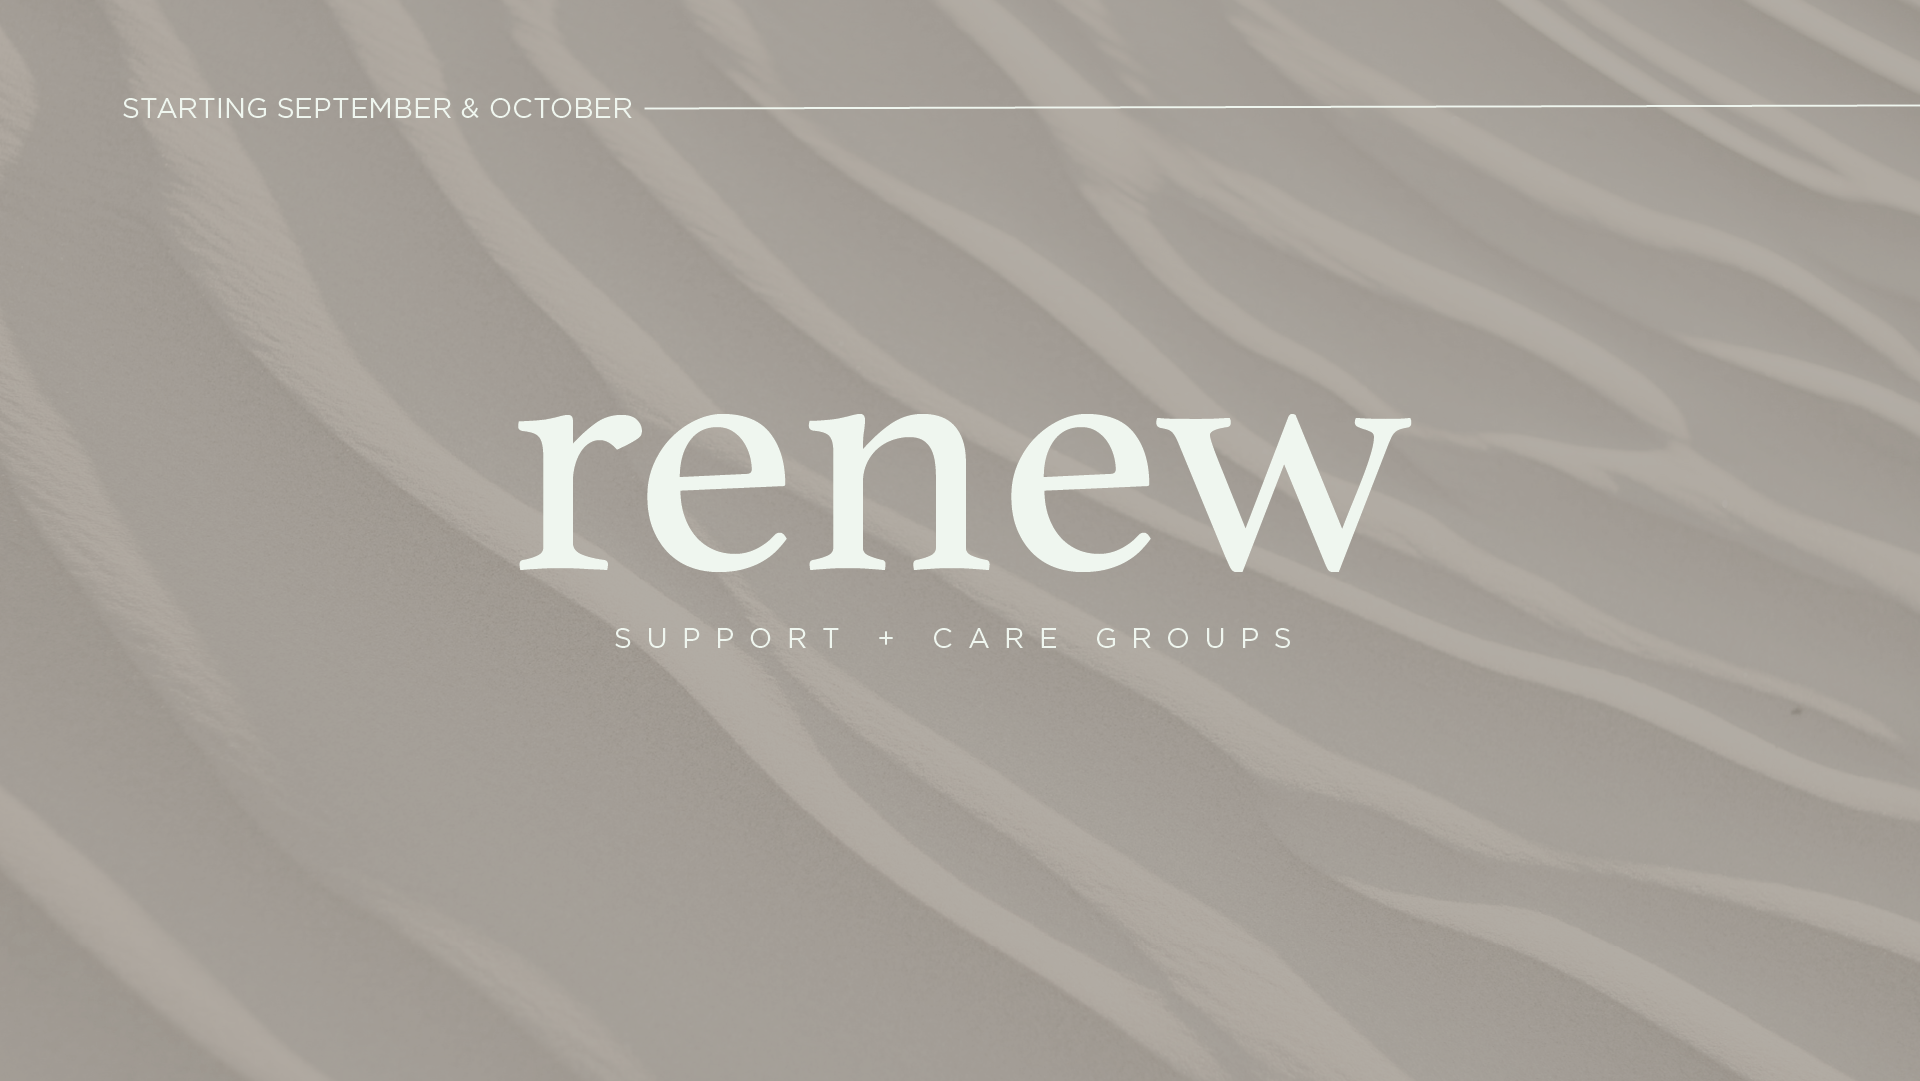 ReNew Care and Support Care Groups Starting September & October